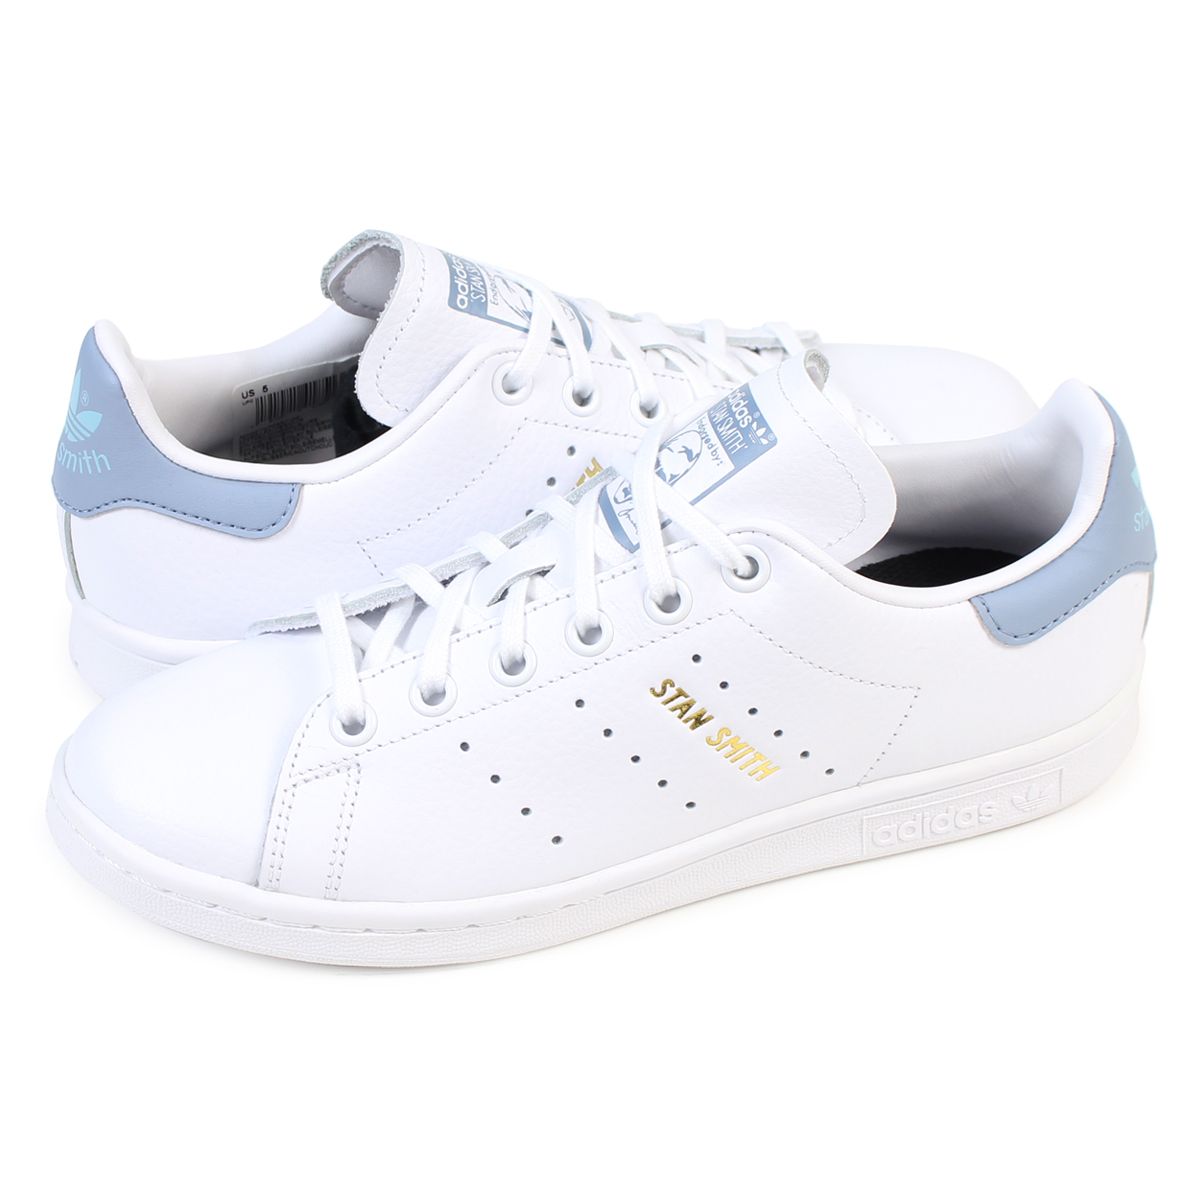 adidas originals STAN SMITH Adidas Stan Smith Lady's sneakers CP9810 shoes  white [load planned Shinnyu load in reservation product 9/28 containing]